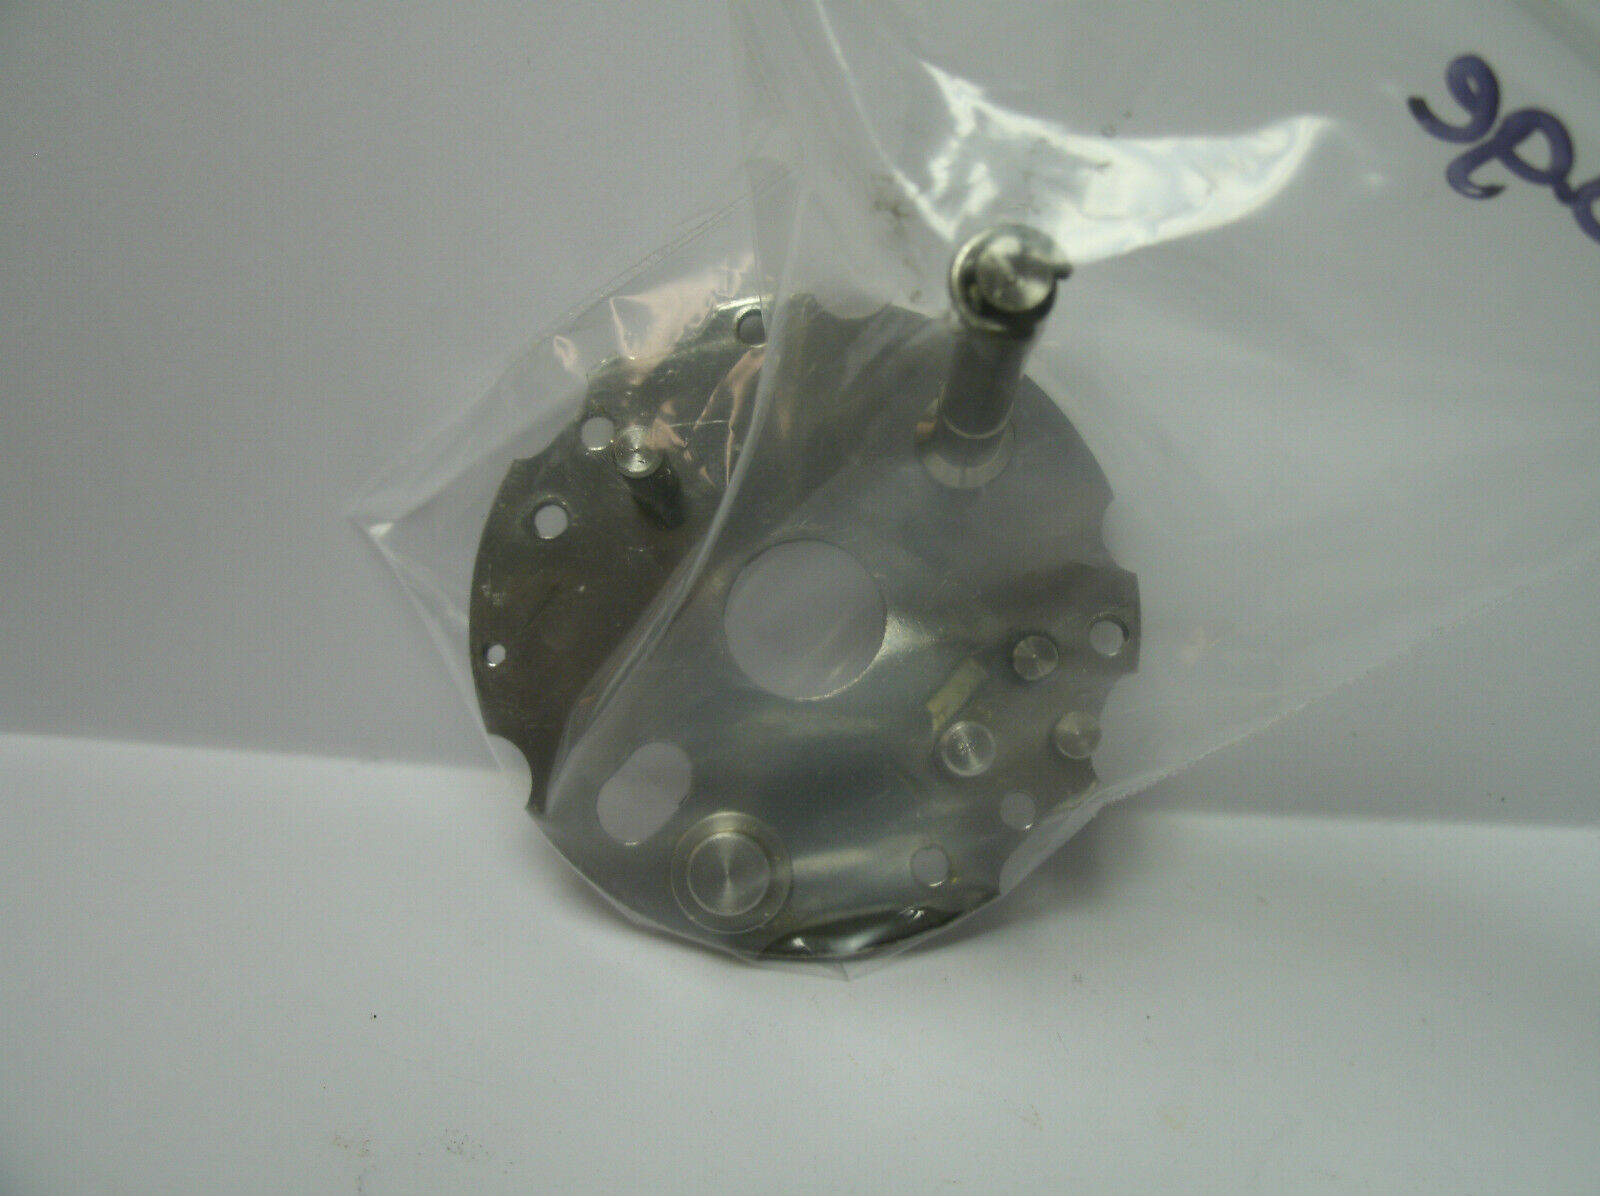 USED NEWELL CONVENTIONAL REEL PART - G-220 F - Bridge Only